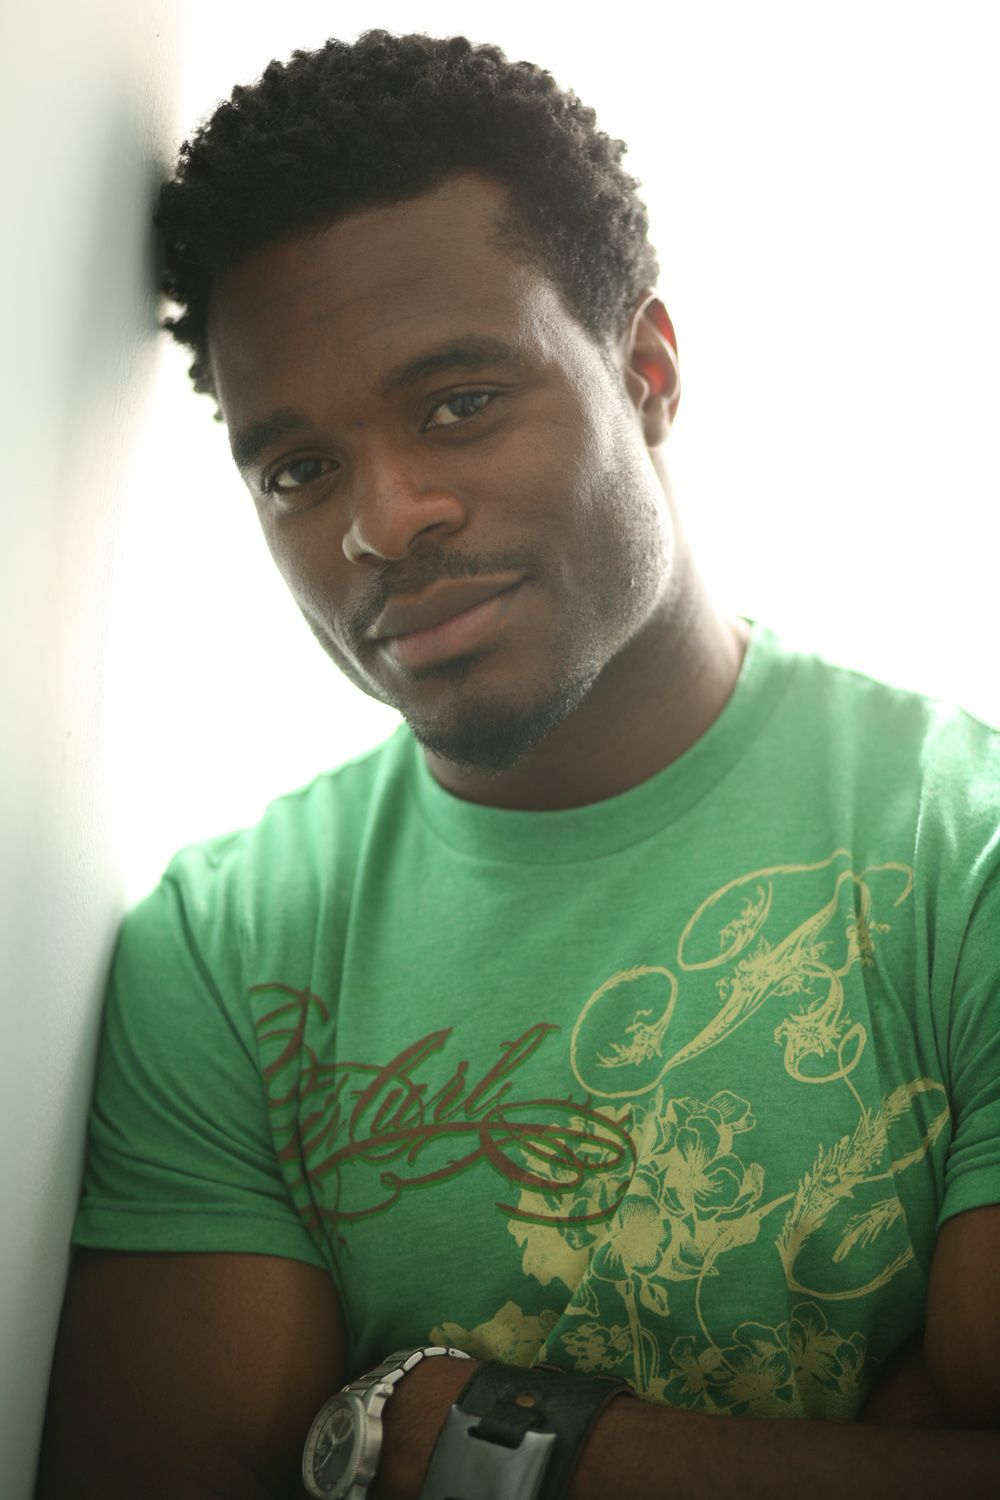 lyriq bent date of birth